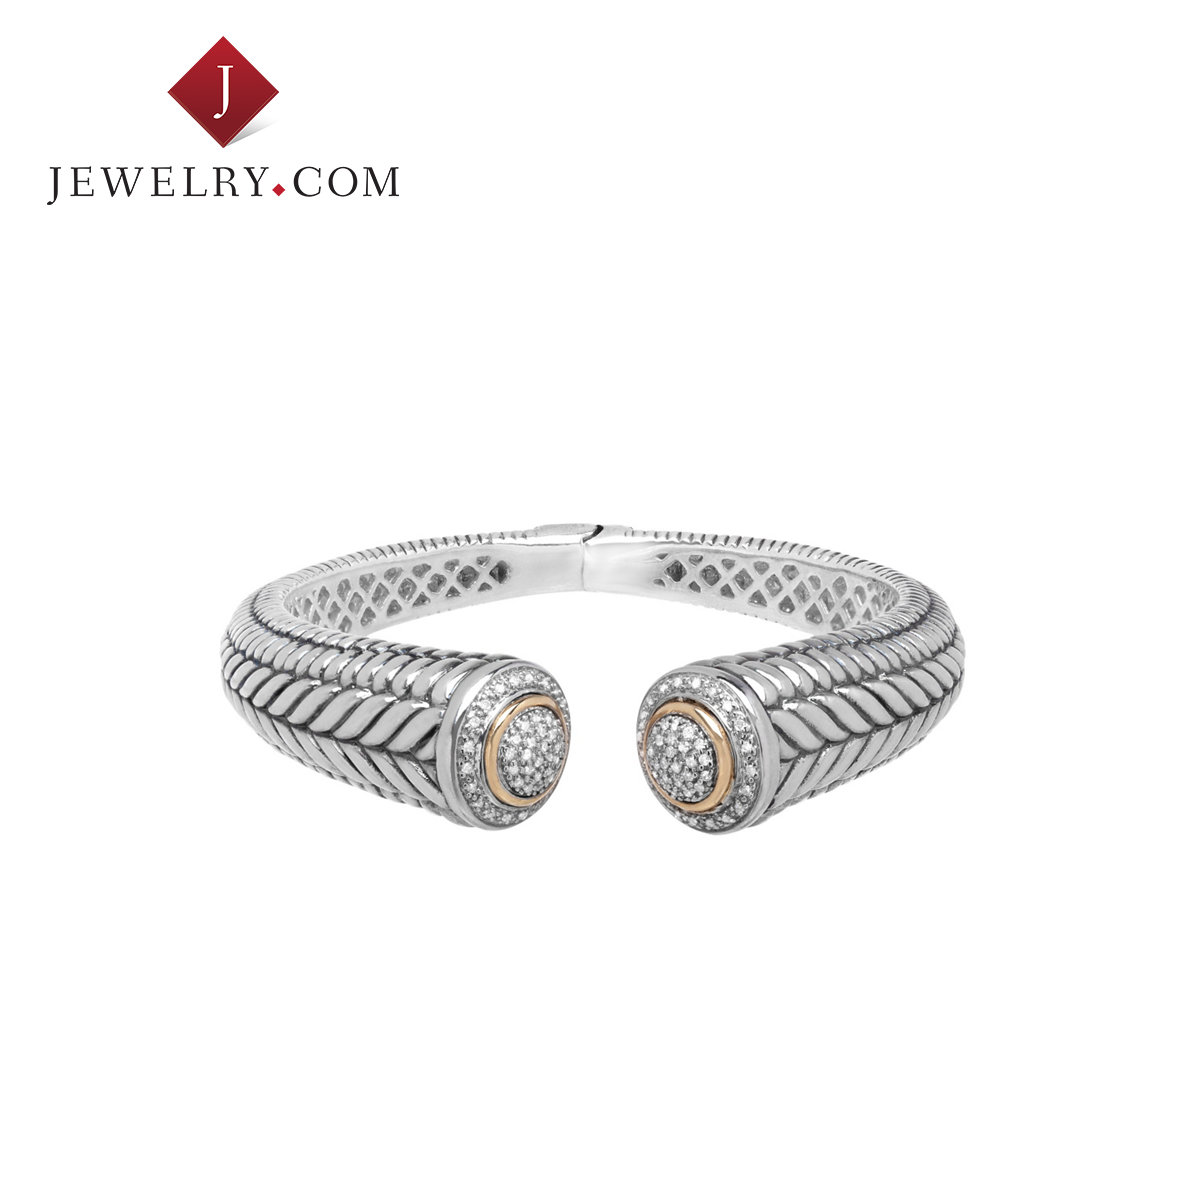 Jewelry.com official 925 silver 0.5 karat k gold inlay diamond luxury european and american jewelry bracelet female models opening